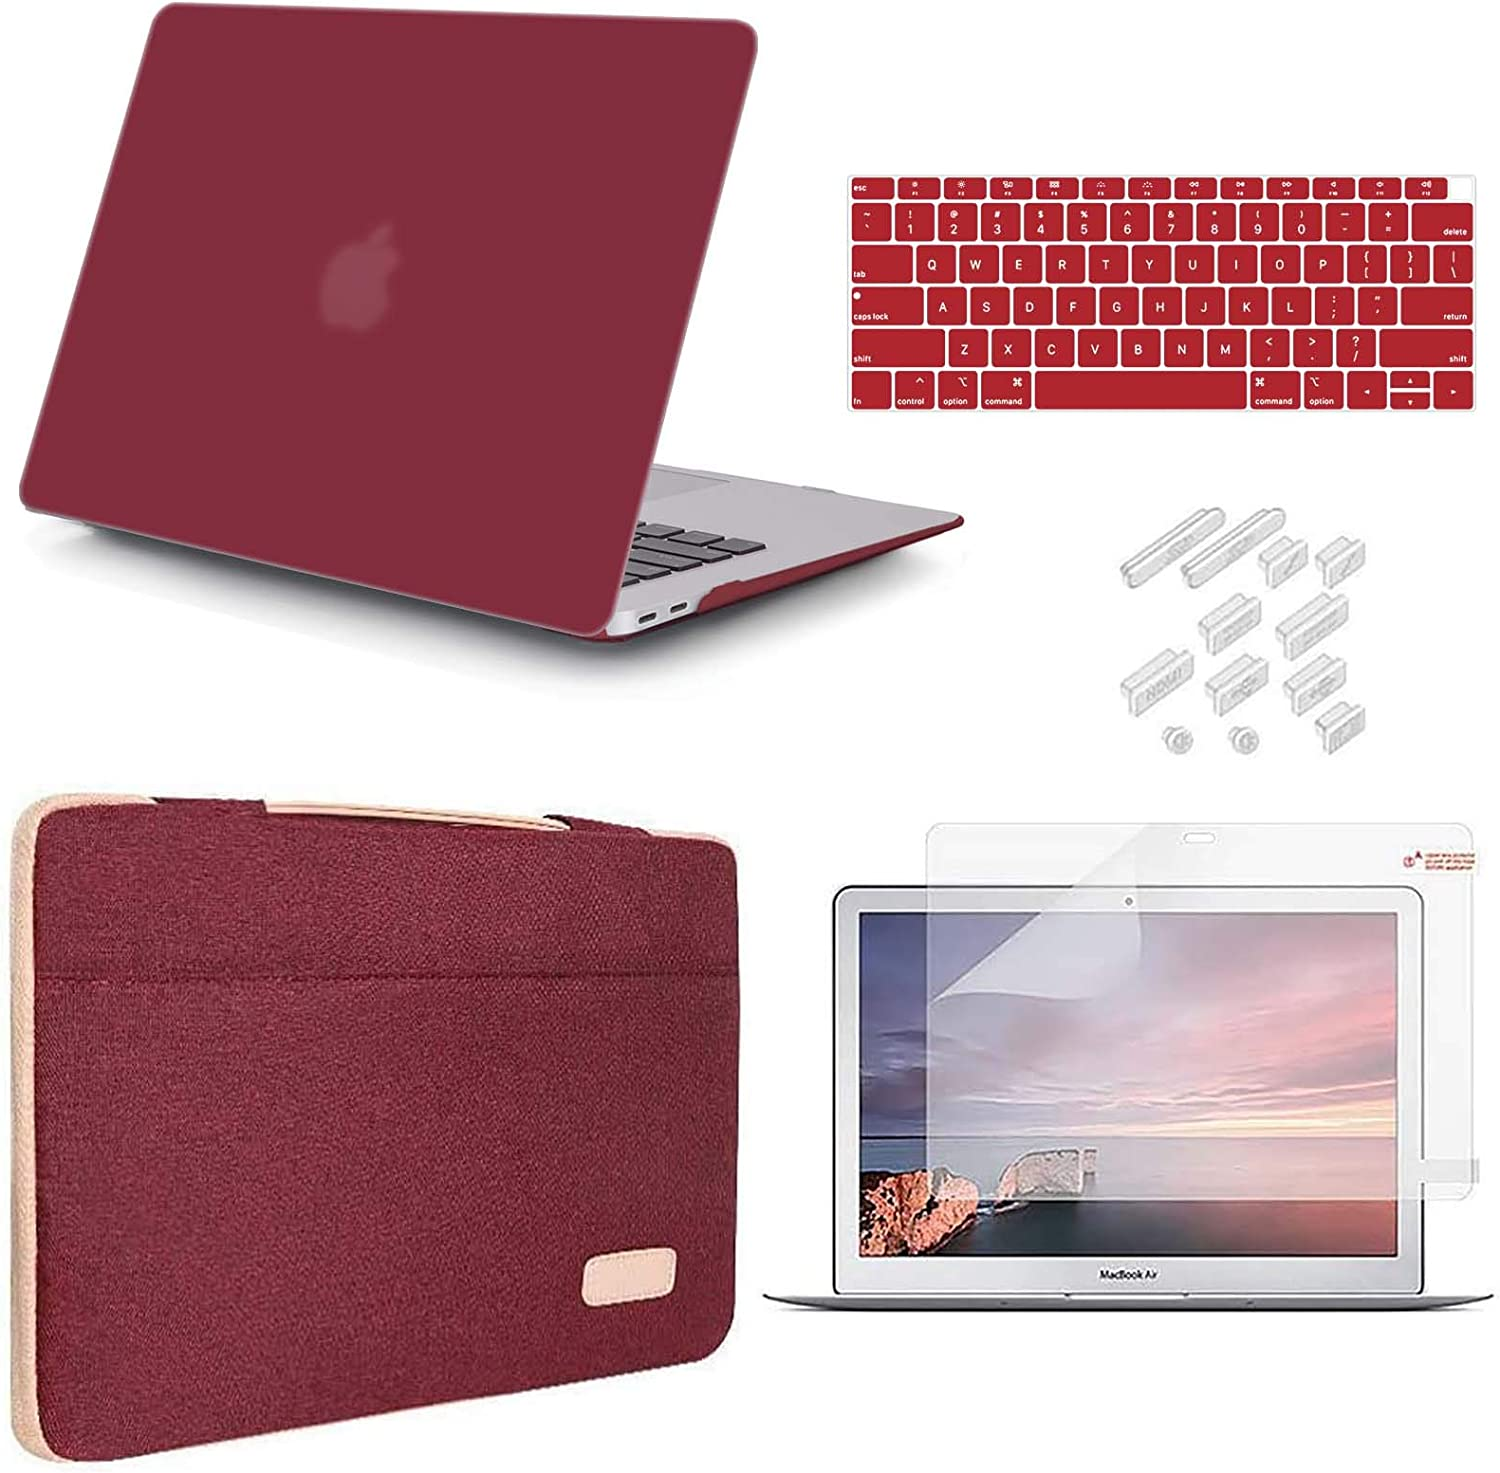 iCasso Compatible MacBook Air 13 inch Case 2020 2019 2018 Release A2337 M1 A2179 A1932 Bundle, Plastic Hard Case Shell, Sleeve Bag, Screen Protector, Keyboard Cover and Dust Plug - Wine Red